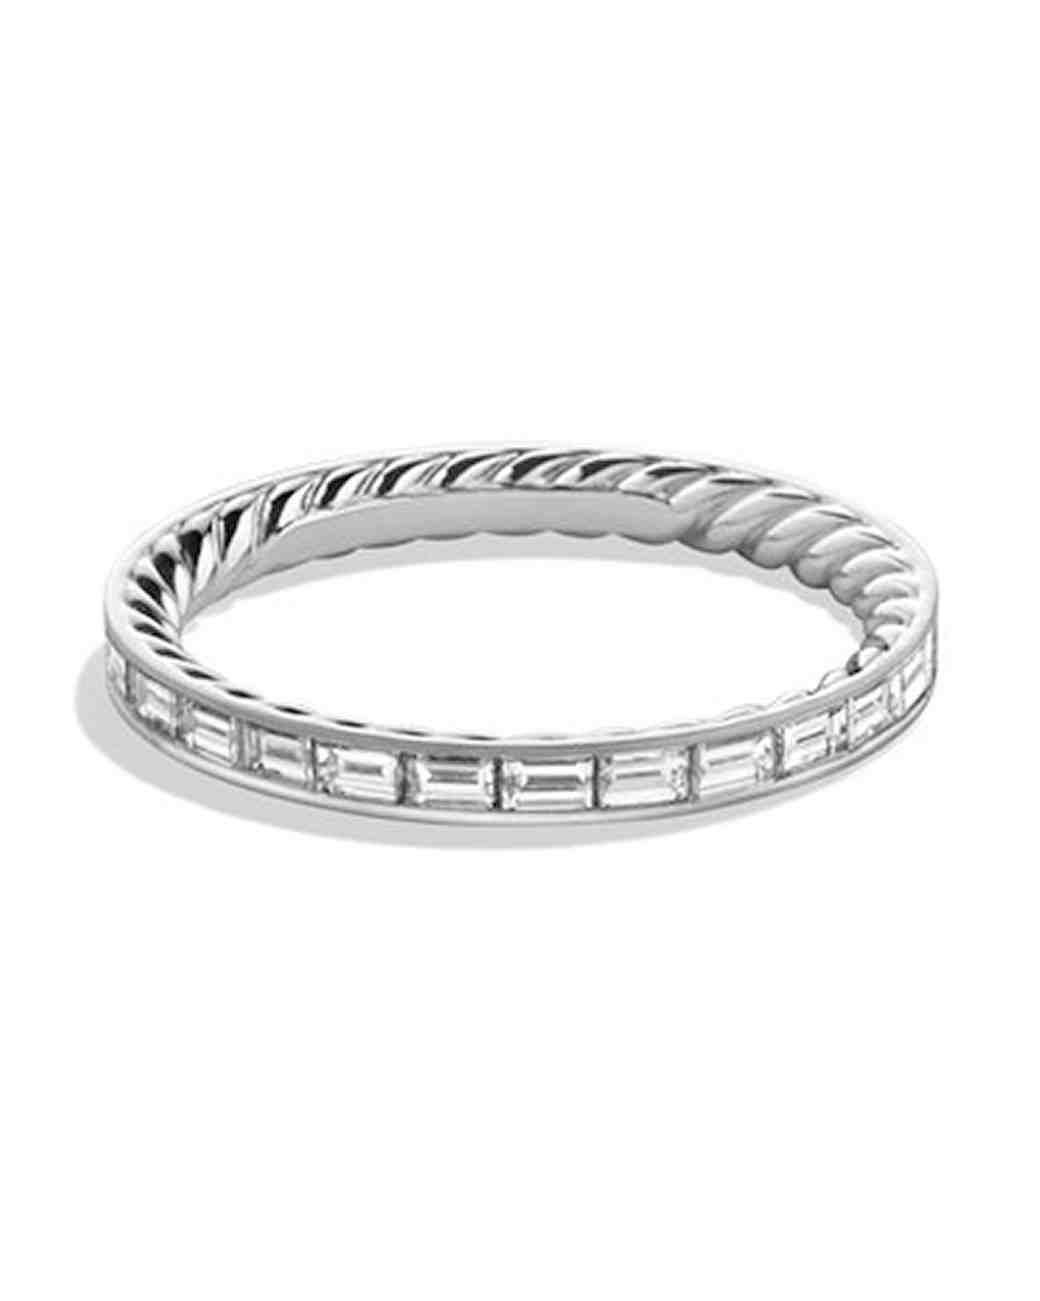 eternity-bands-baguettes-david-yurman-0515.jpg